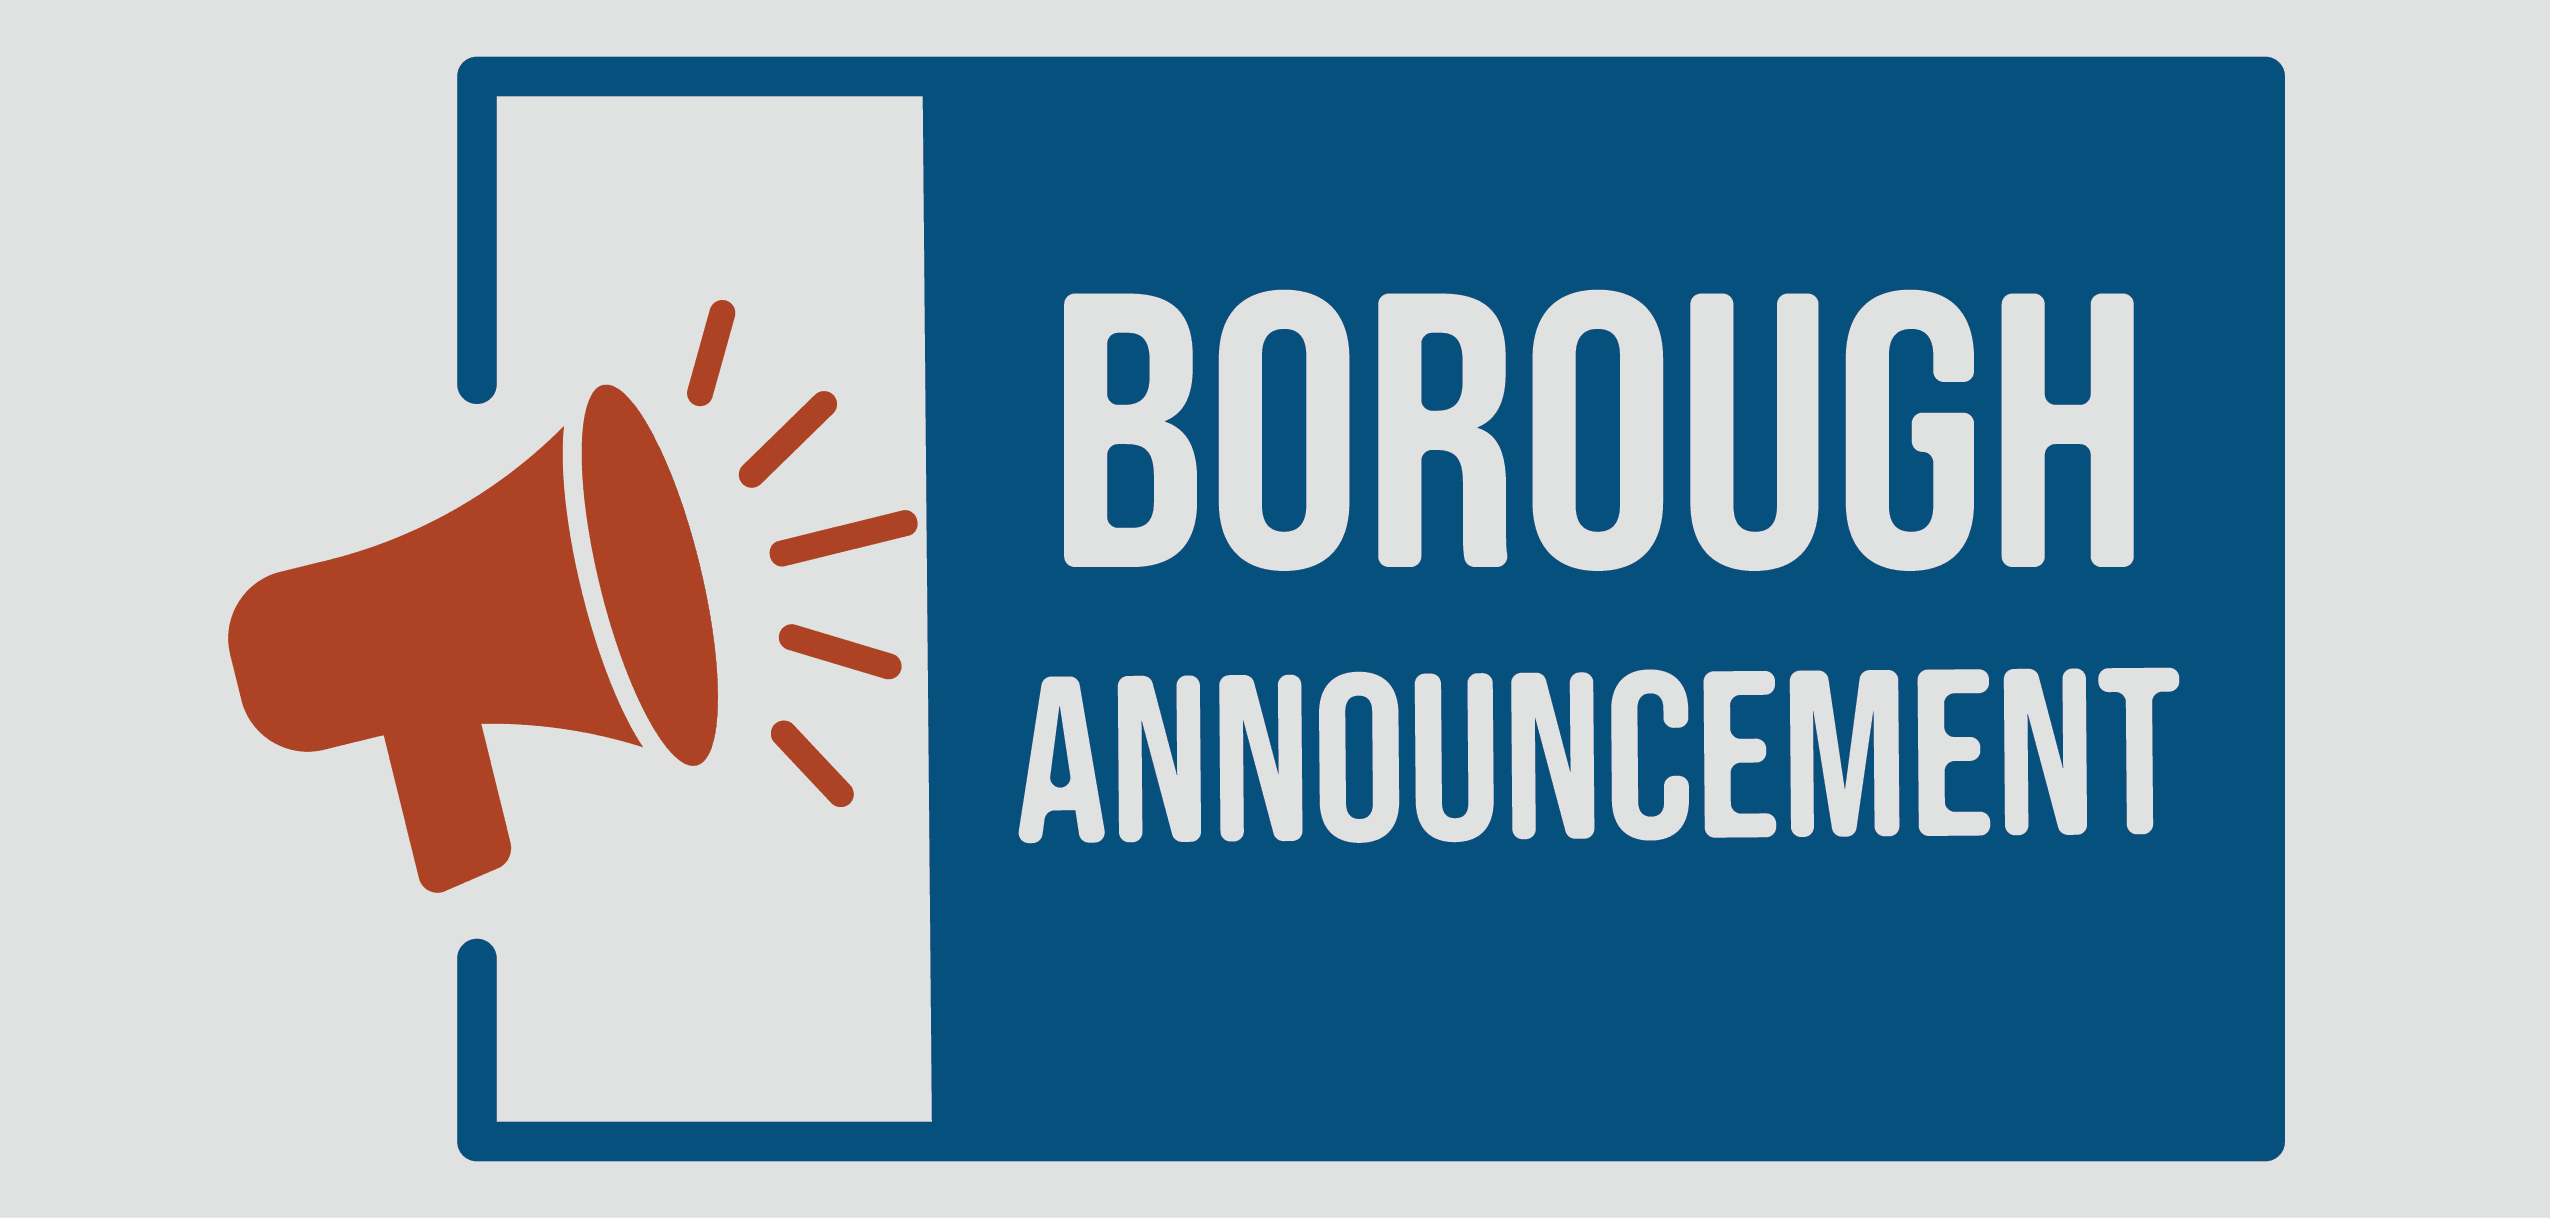 Borough Announcement